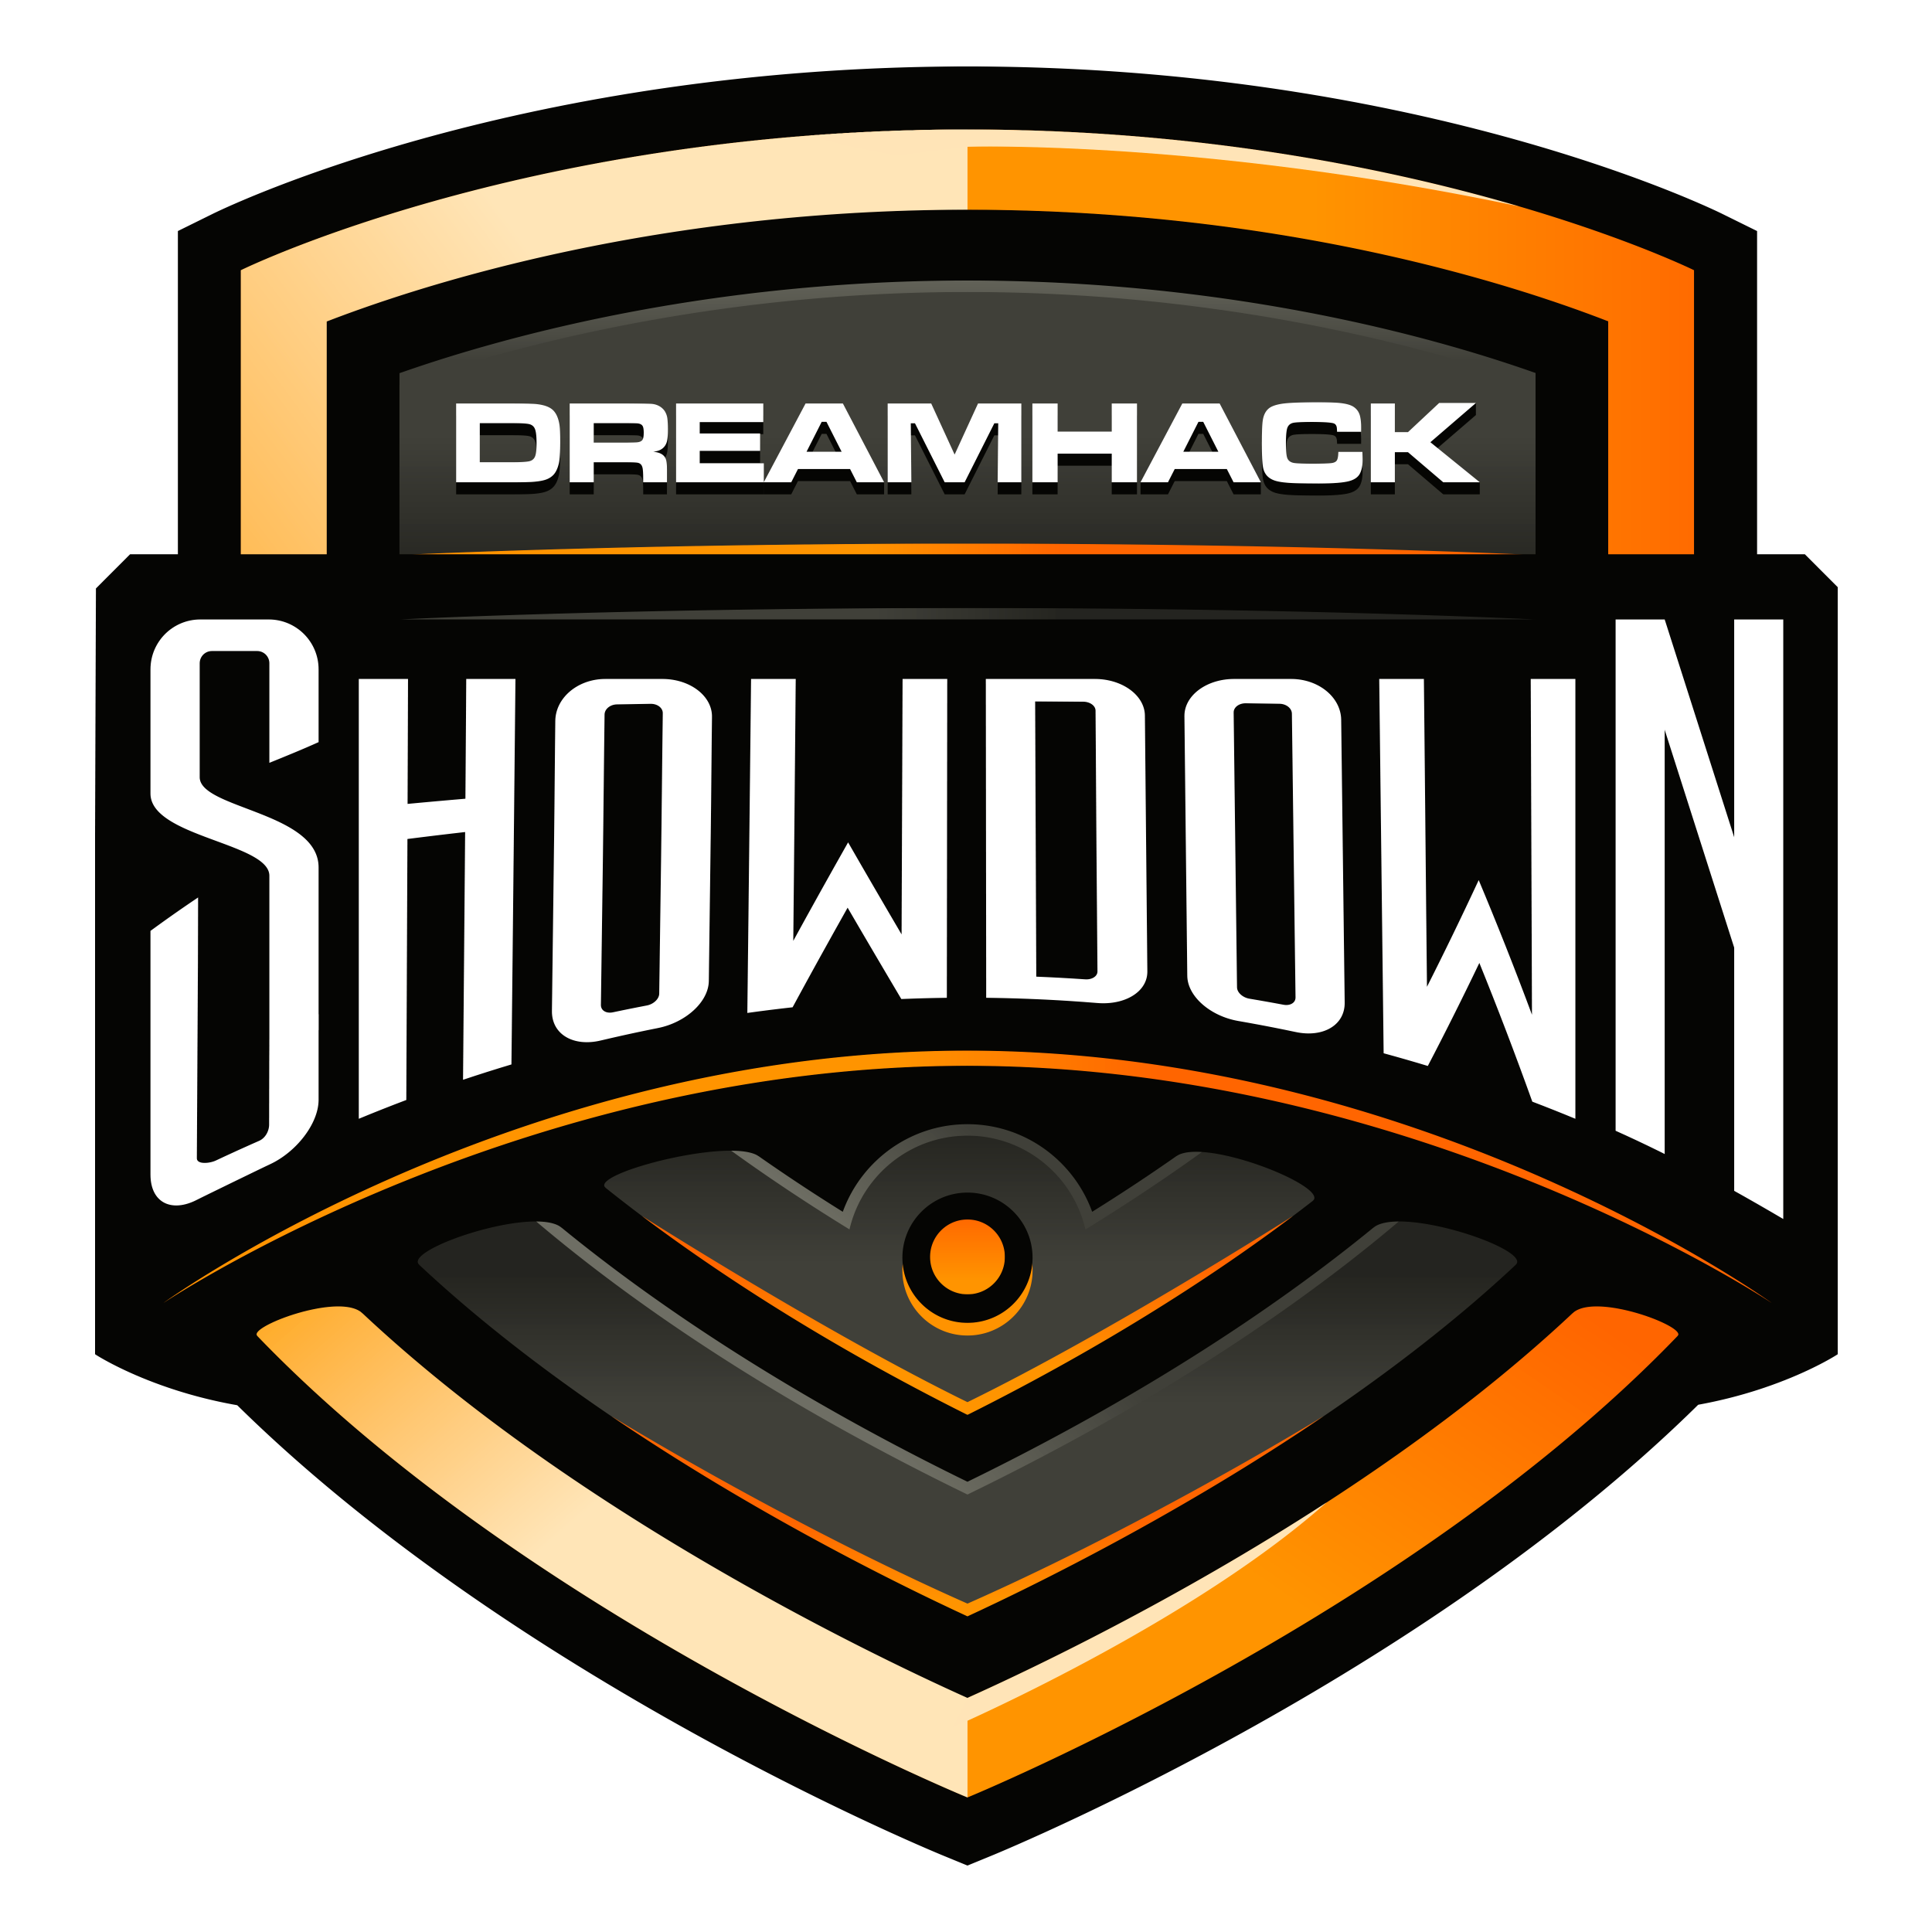 DreamHack Showdown Valencia 2019